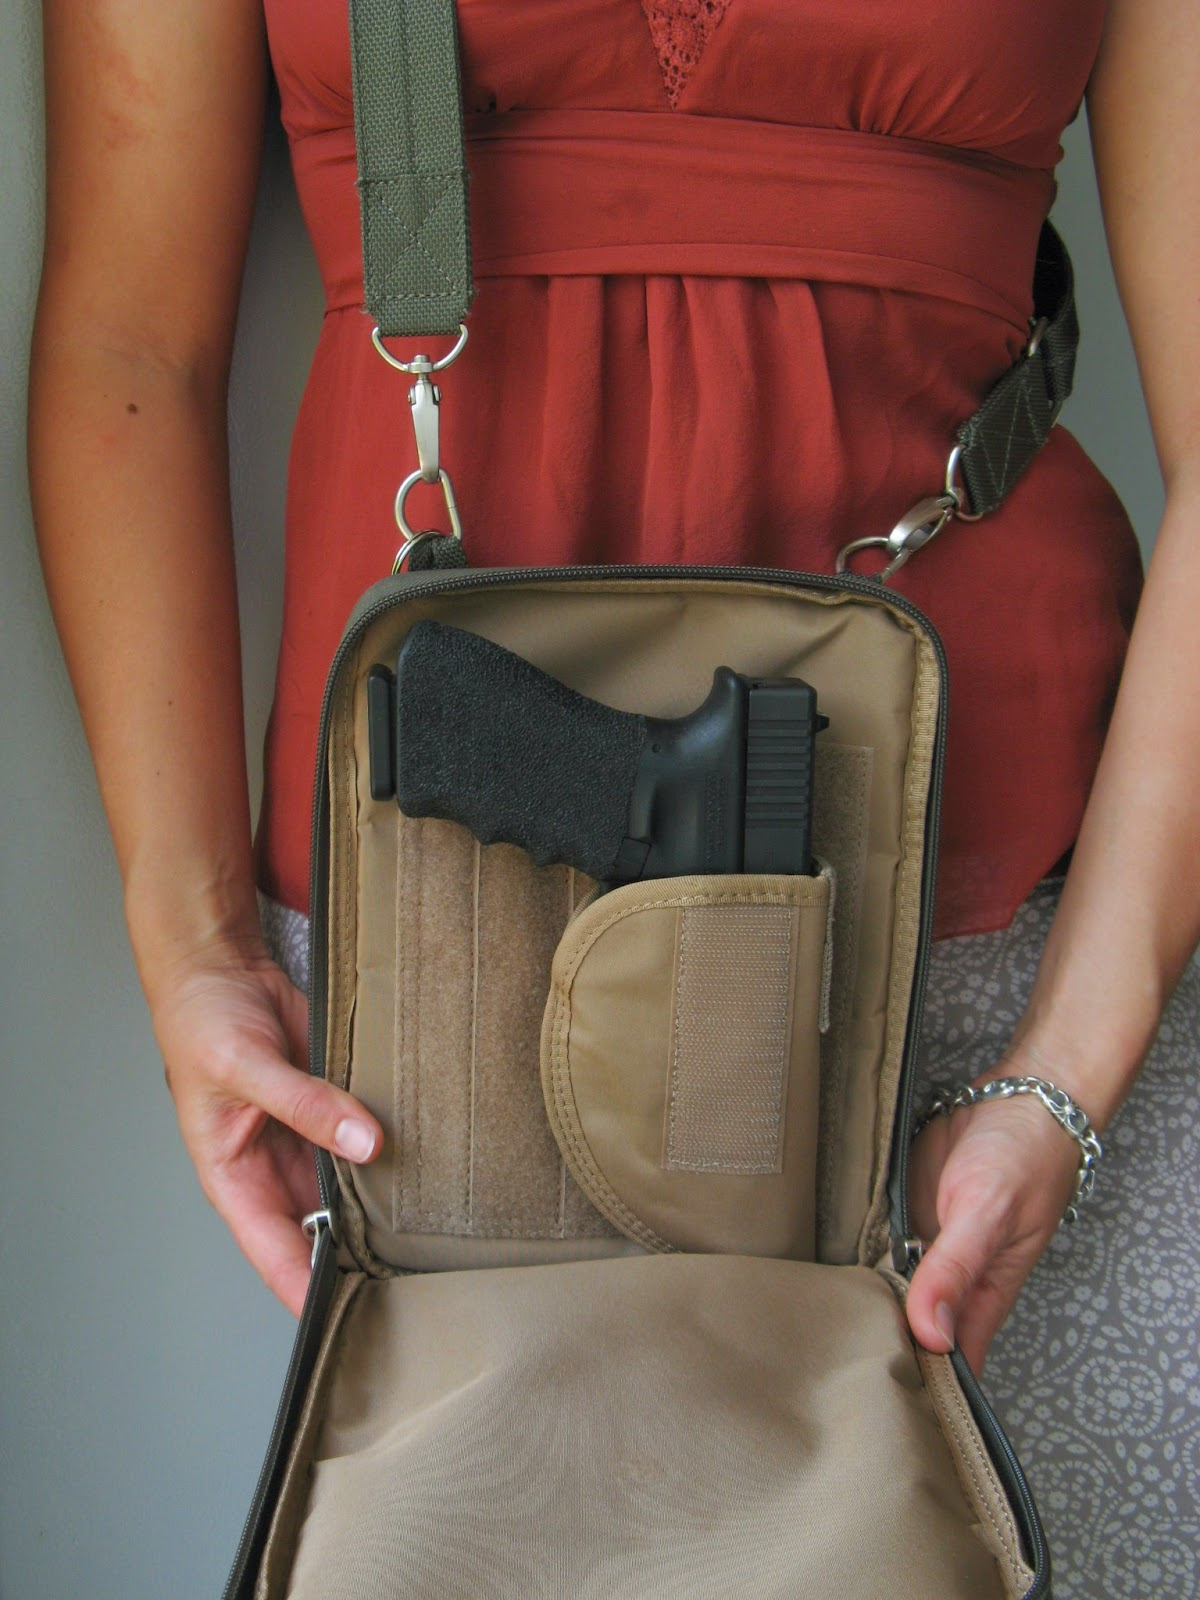 Carry concealed